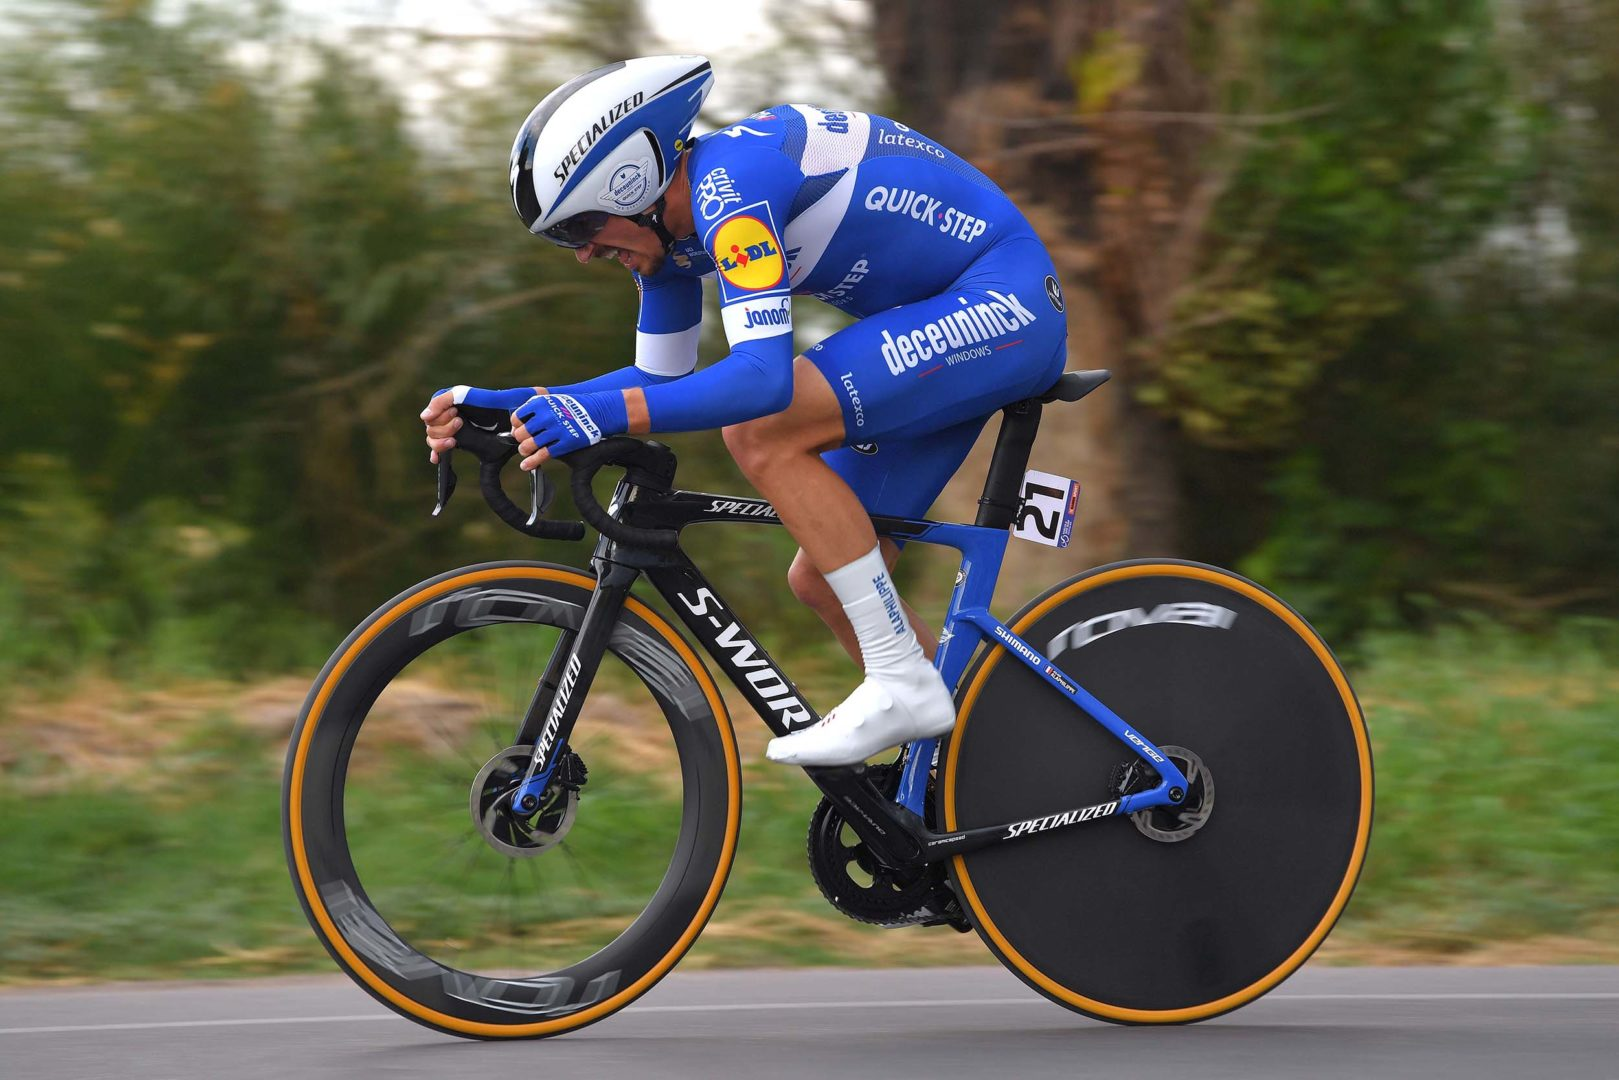 POCITO, ARGENTINA - JANUARY 29: Julian Alaphilippe of France and Deceuninck - Quick-Step Team / during the 37th Tour of San Juan 2019, Stage 3 a 12km Individual Time Trial stage from Pocito to Pocito / #VueltaSJ2019 / on January 29, 2019 in Pocito, Argentina. (Photo by Tim de Waele/Getty Images)